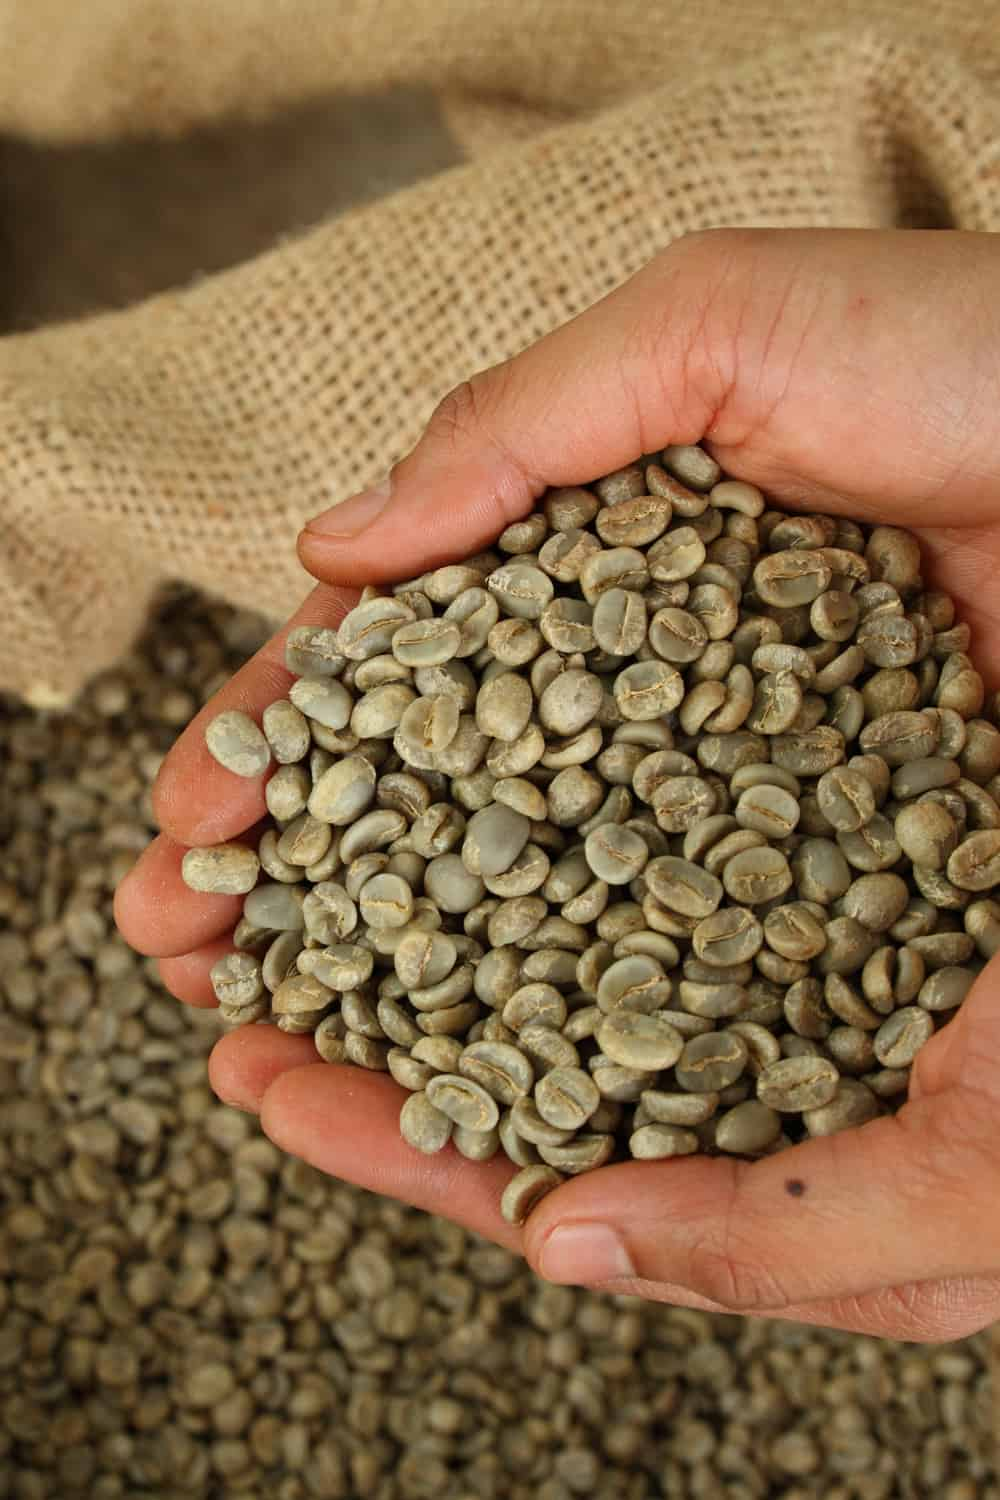 The post-harvesting process affects how coffee should be roasted